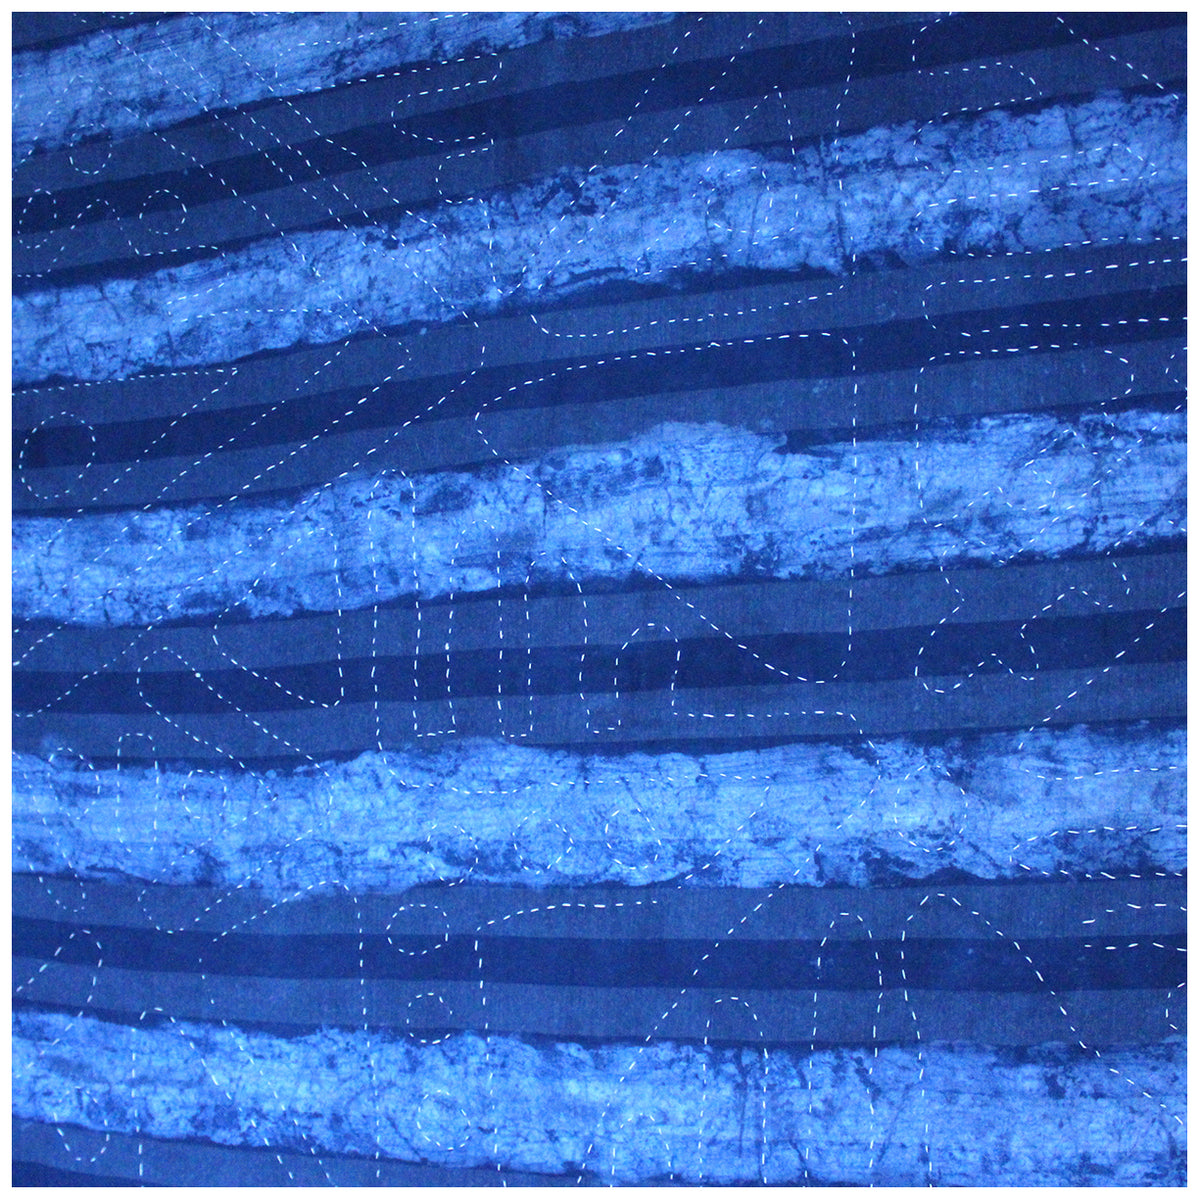 Detail of striped reverse of indigo dyed quilt